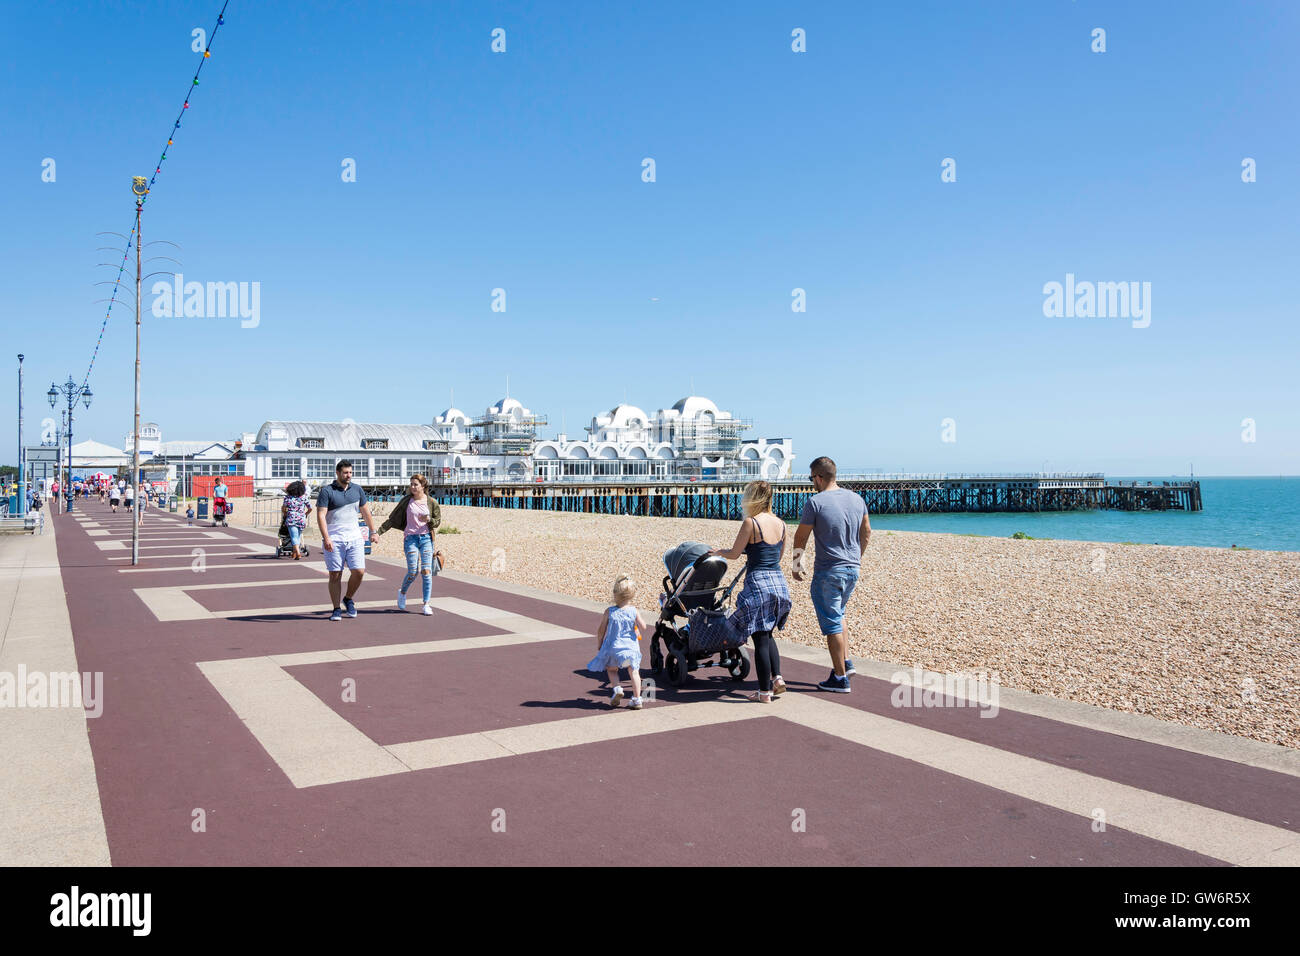 Beach promenade and South Parade Pier, Southsea Beach, Southsea, Portsmouth, Hampshire, England, United Kingdom Stock Photo